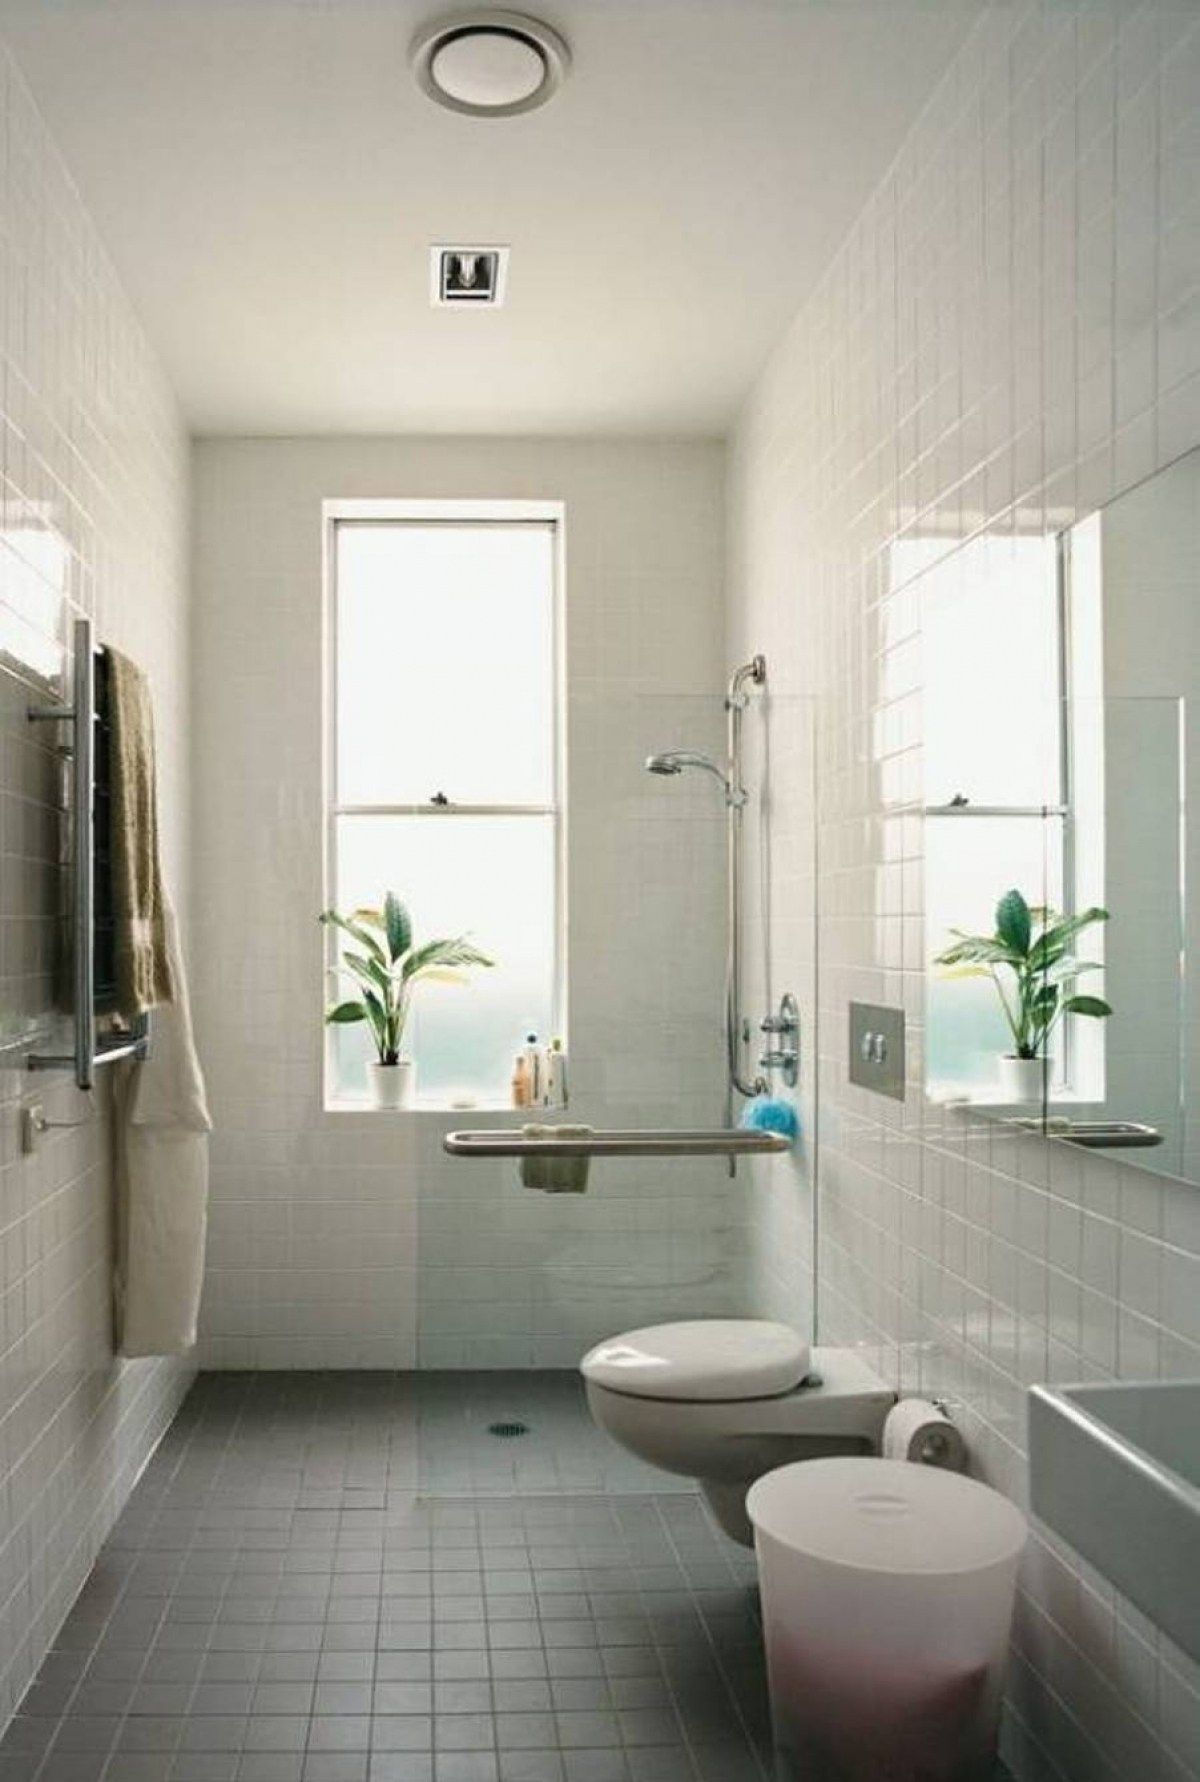 Bathroom small narrow bathroom ideas tub shower popular for Small bathroom design ideas with tub